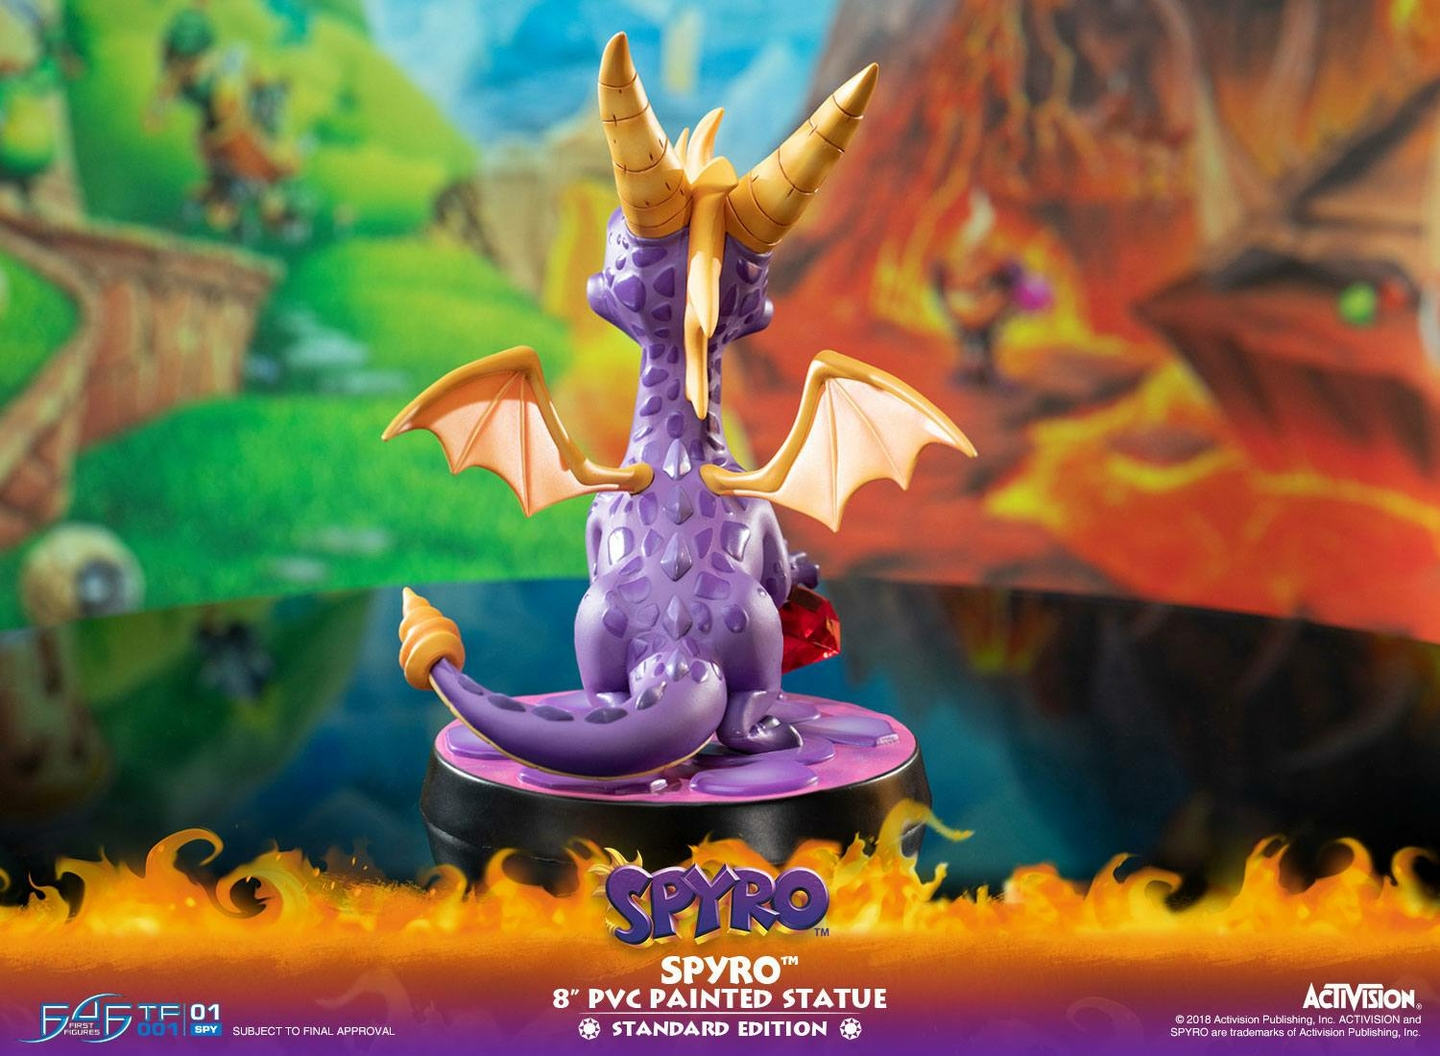 Statuette Spyro the Dragon Spyro 20cm 1001 Figurines (14)